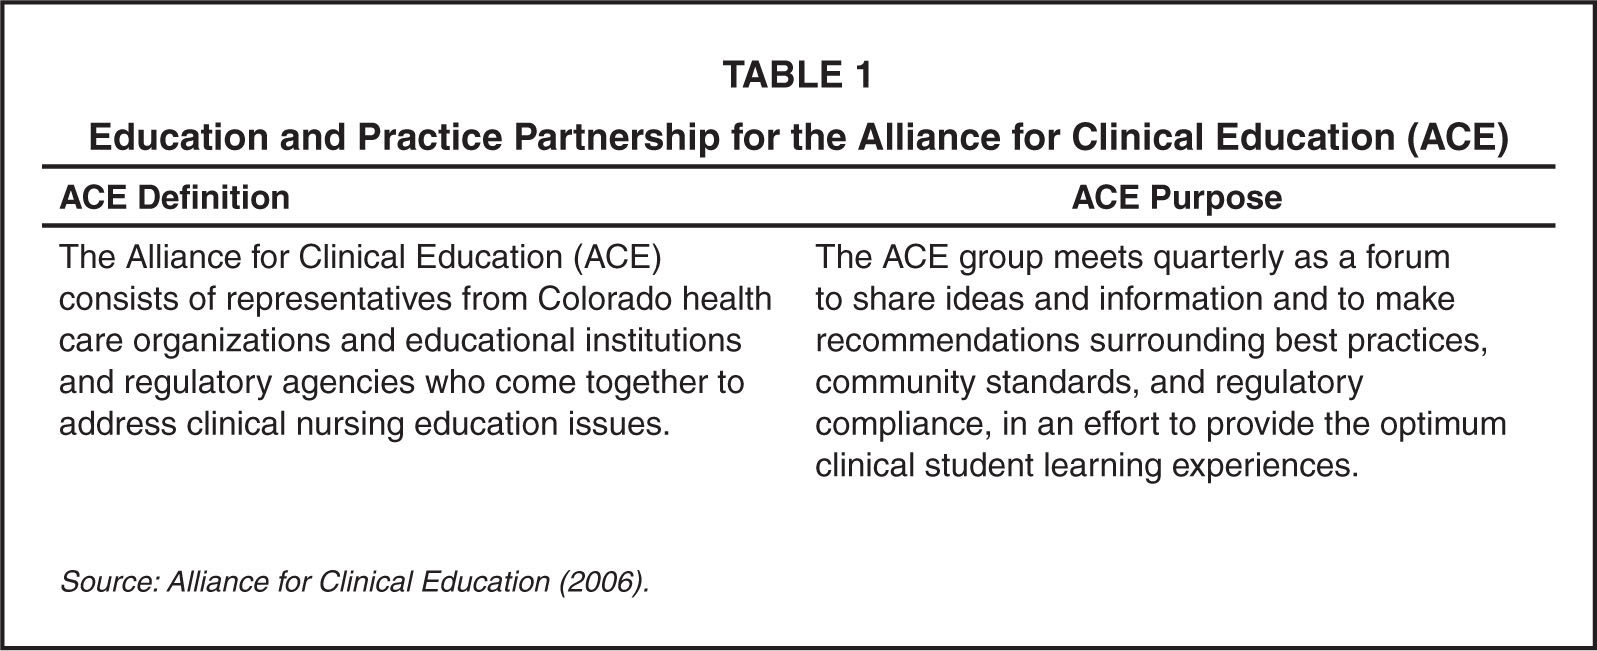 Education and Practice Partnership for the Alliance for Clinical Education (ACE)